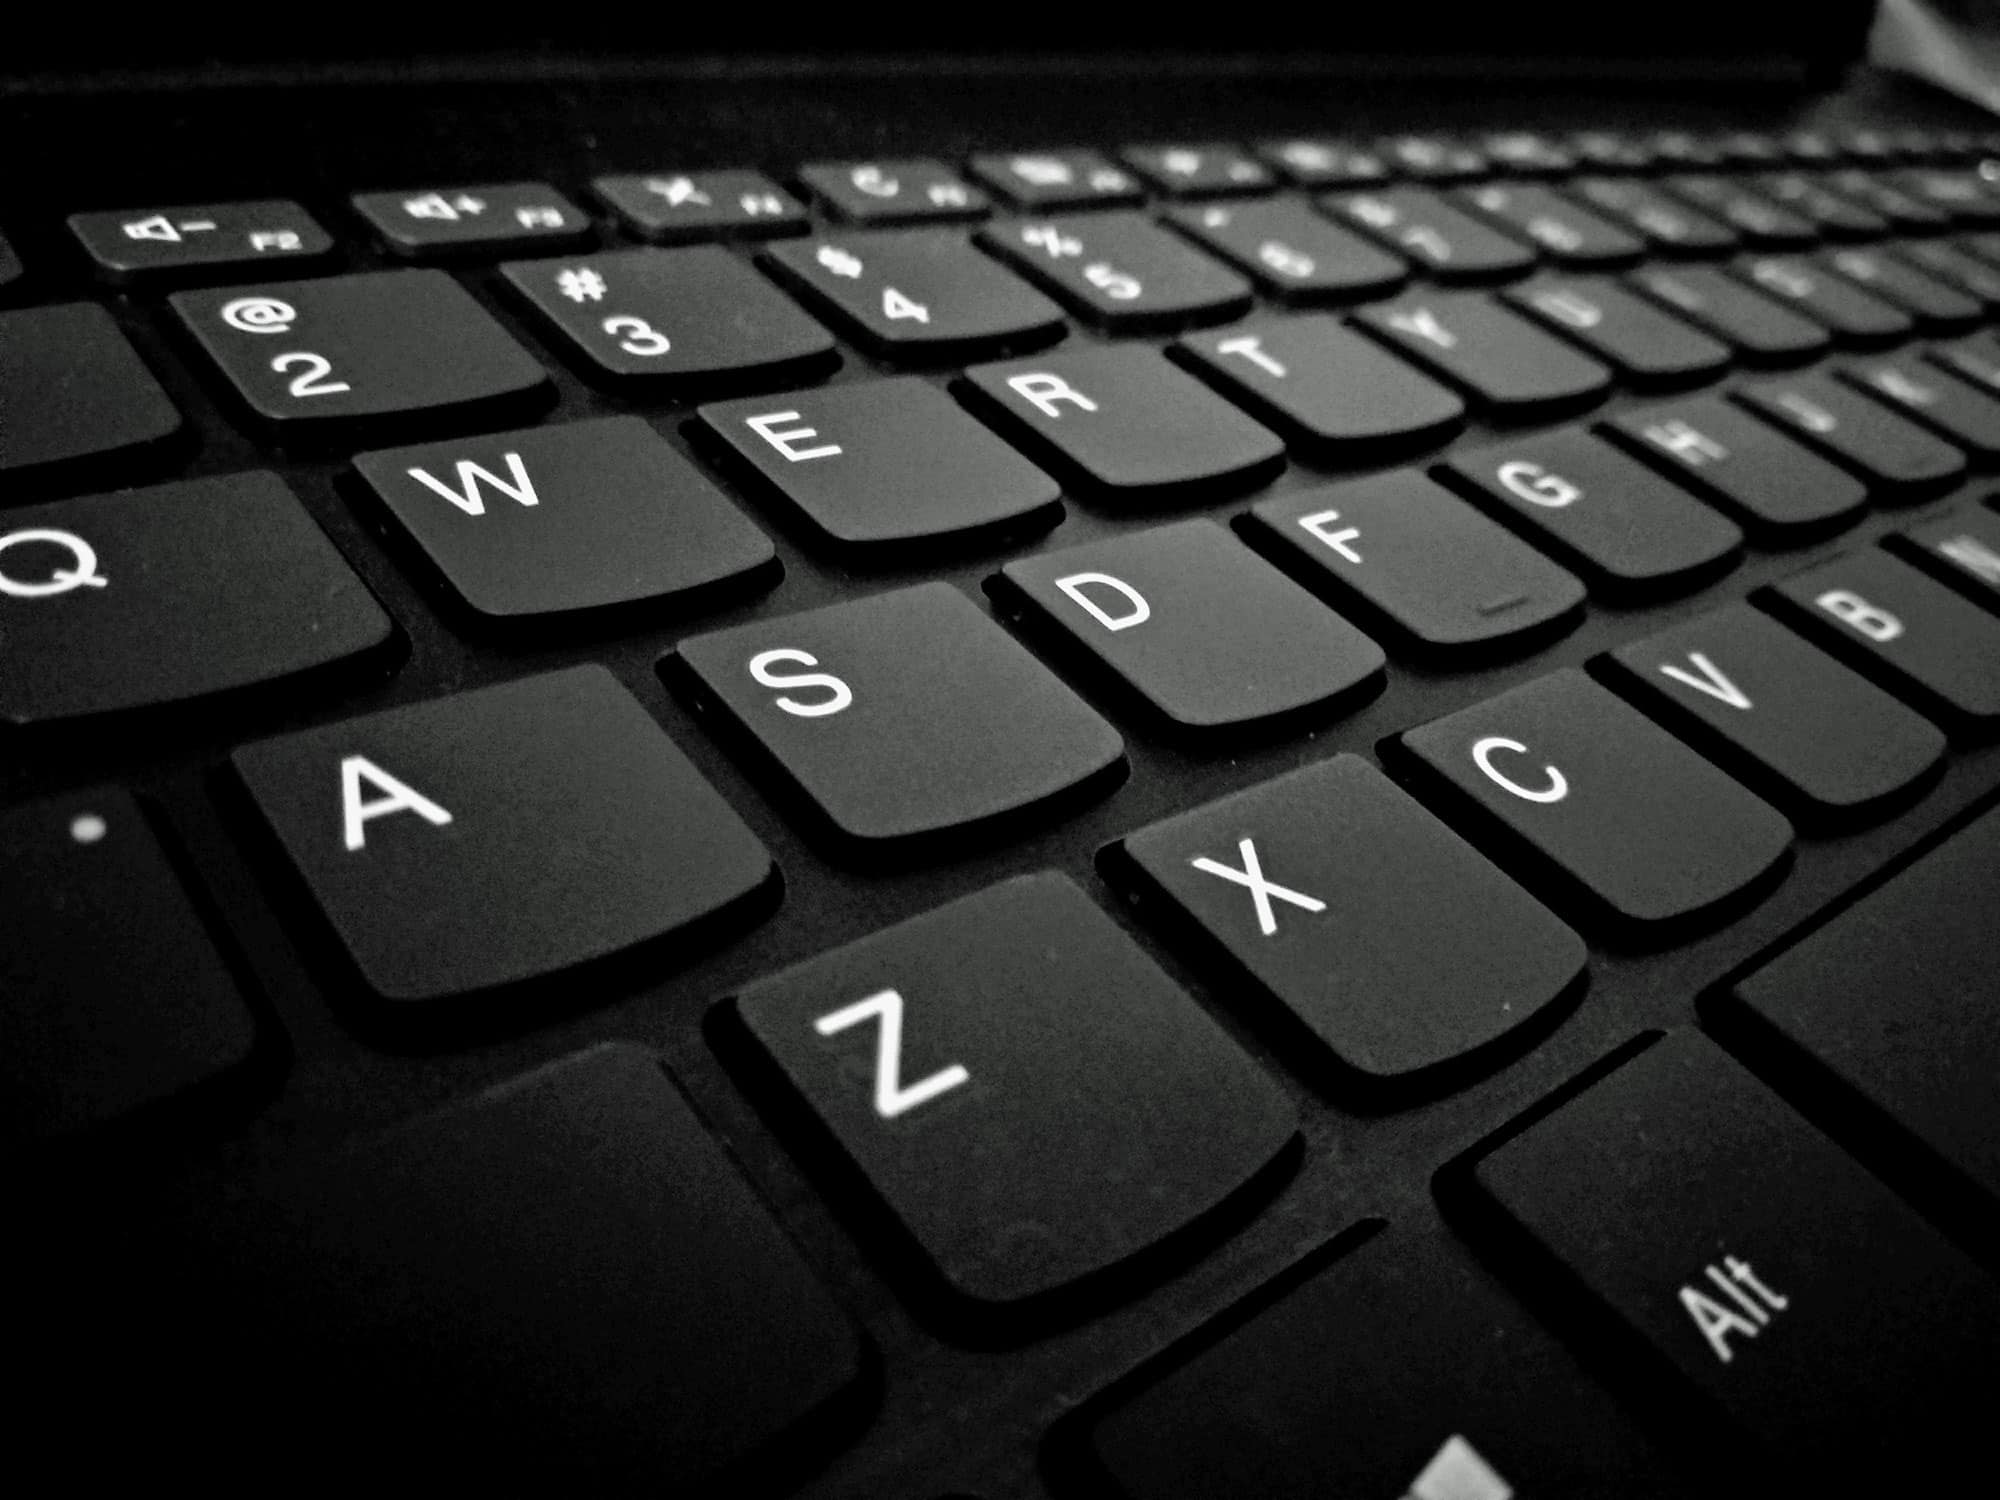 Close up view of a black keyboard